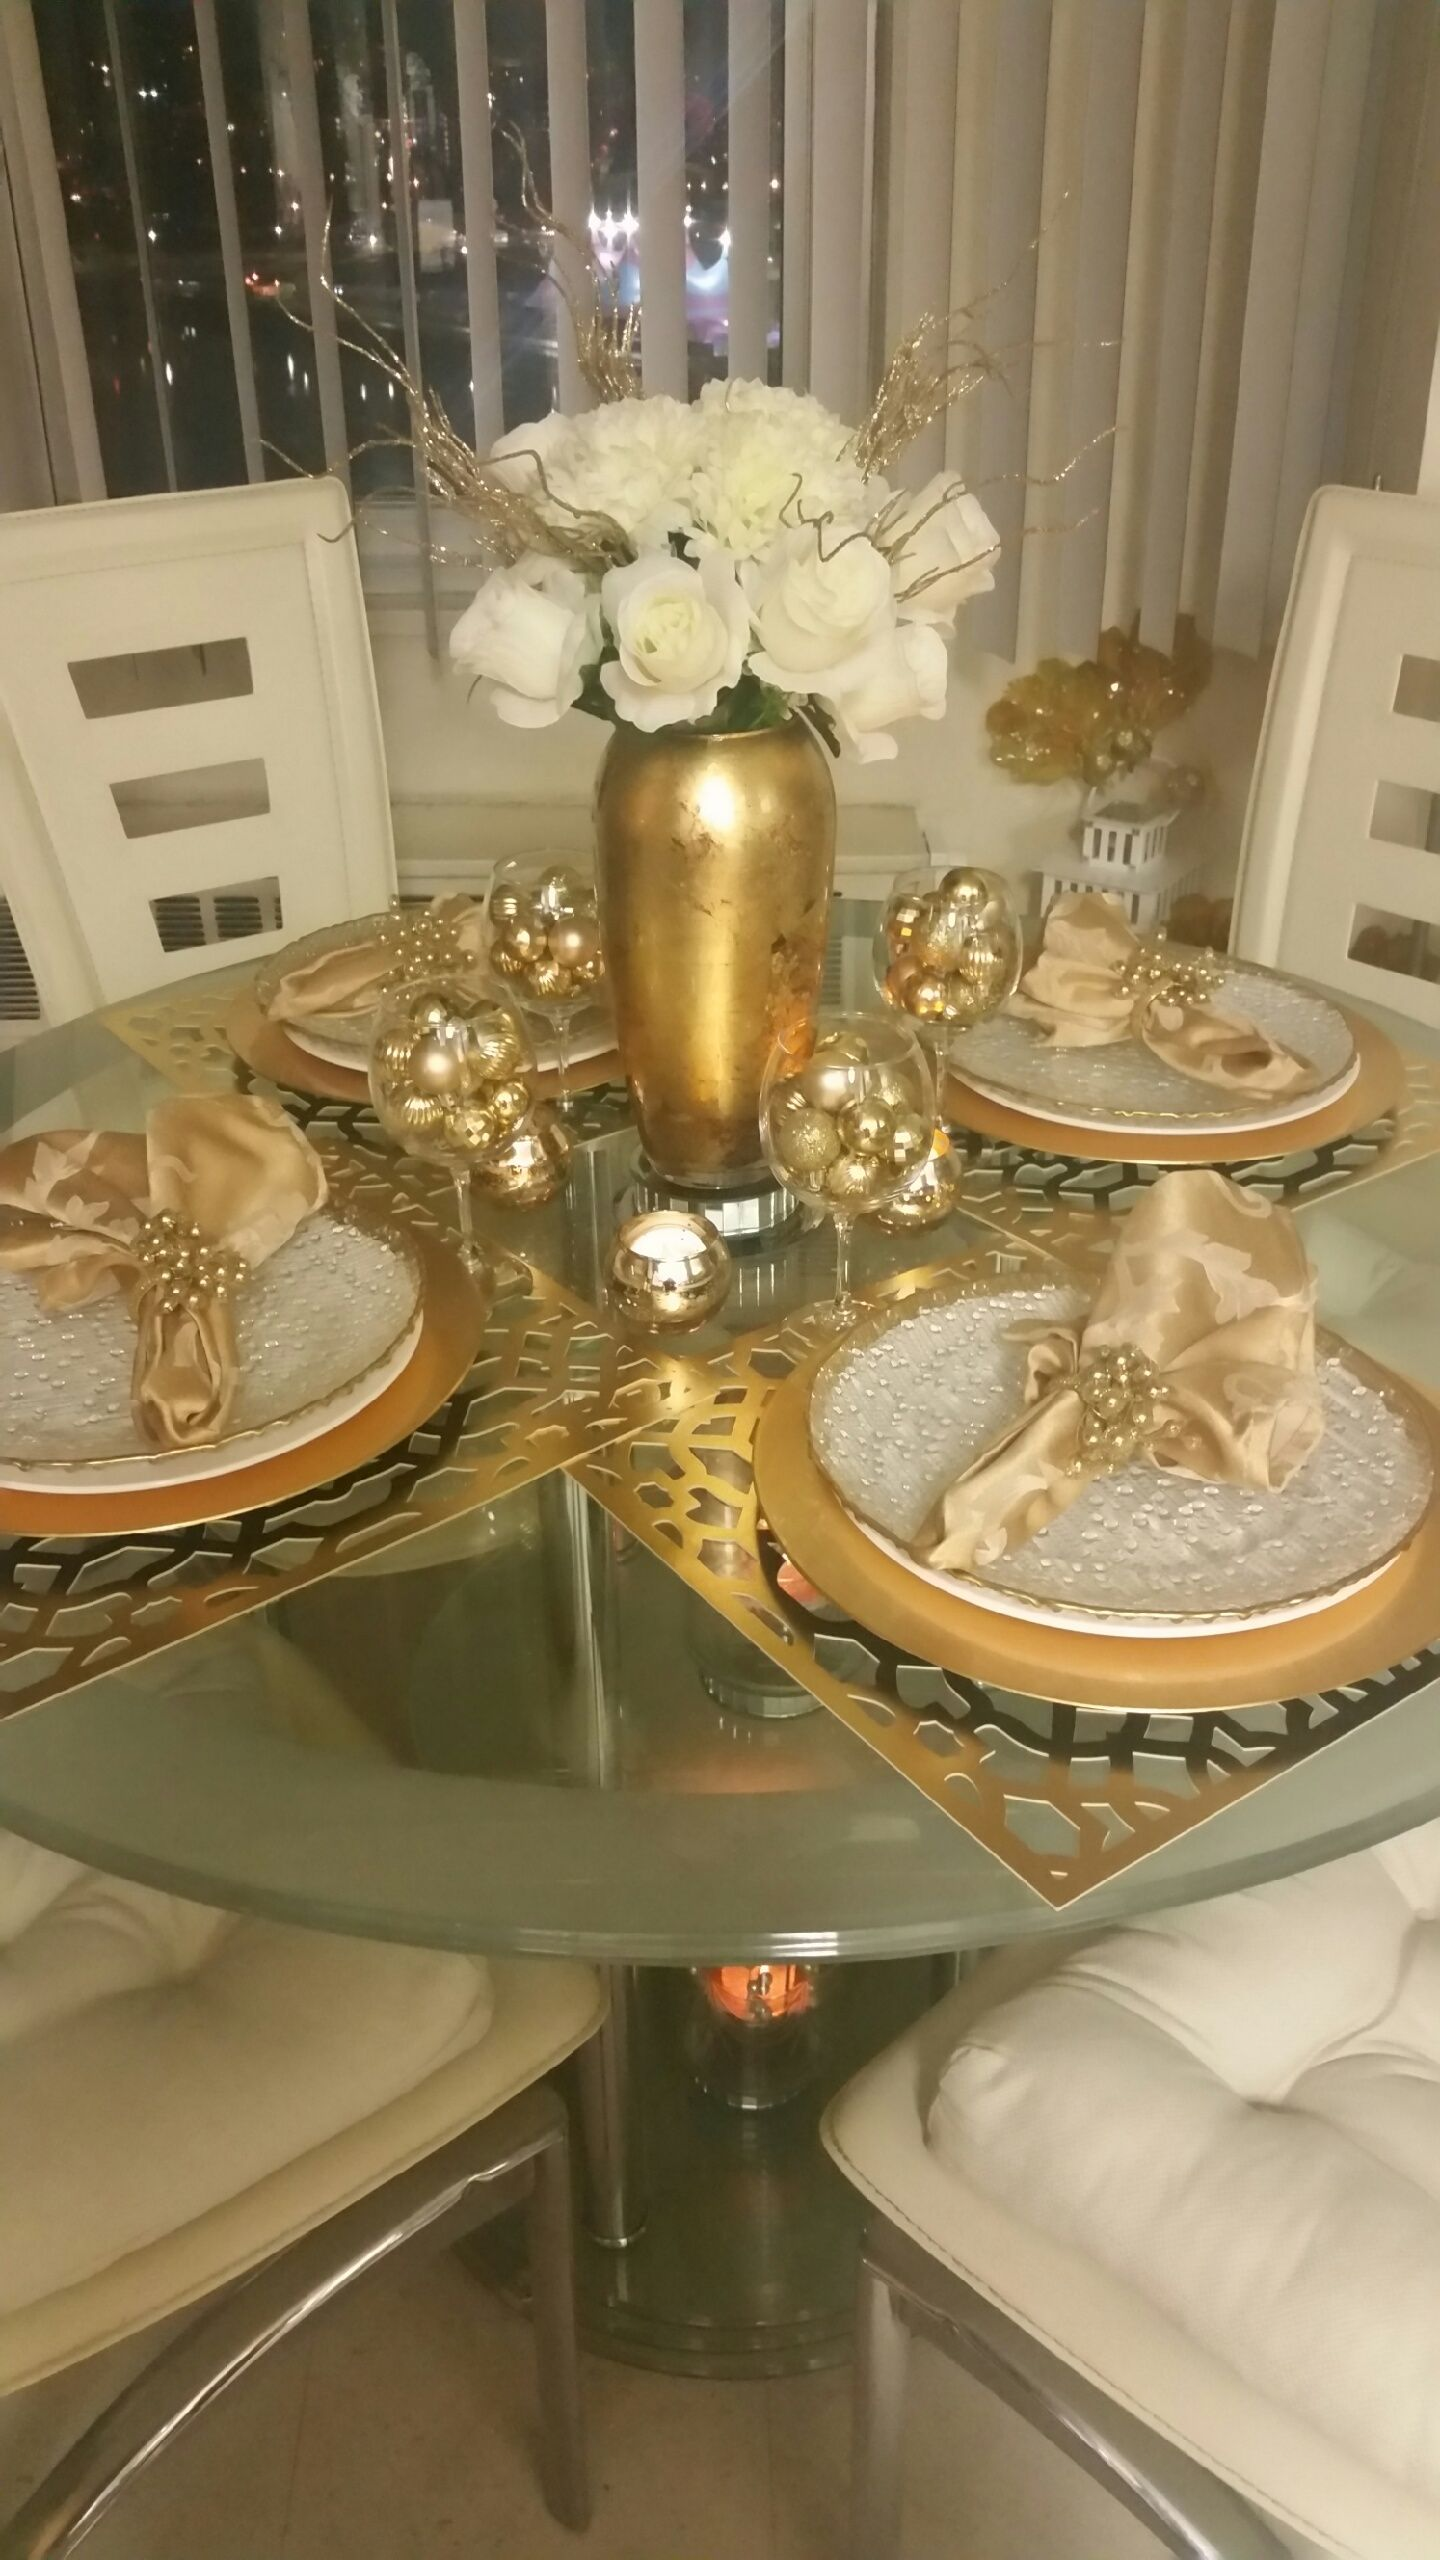 Monaco Placemat Set Of 4 Gold Color Guide Trends Z Gallerie Dinning Table Decor Dining Table Decor Dining Room Table Decor